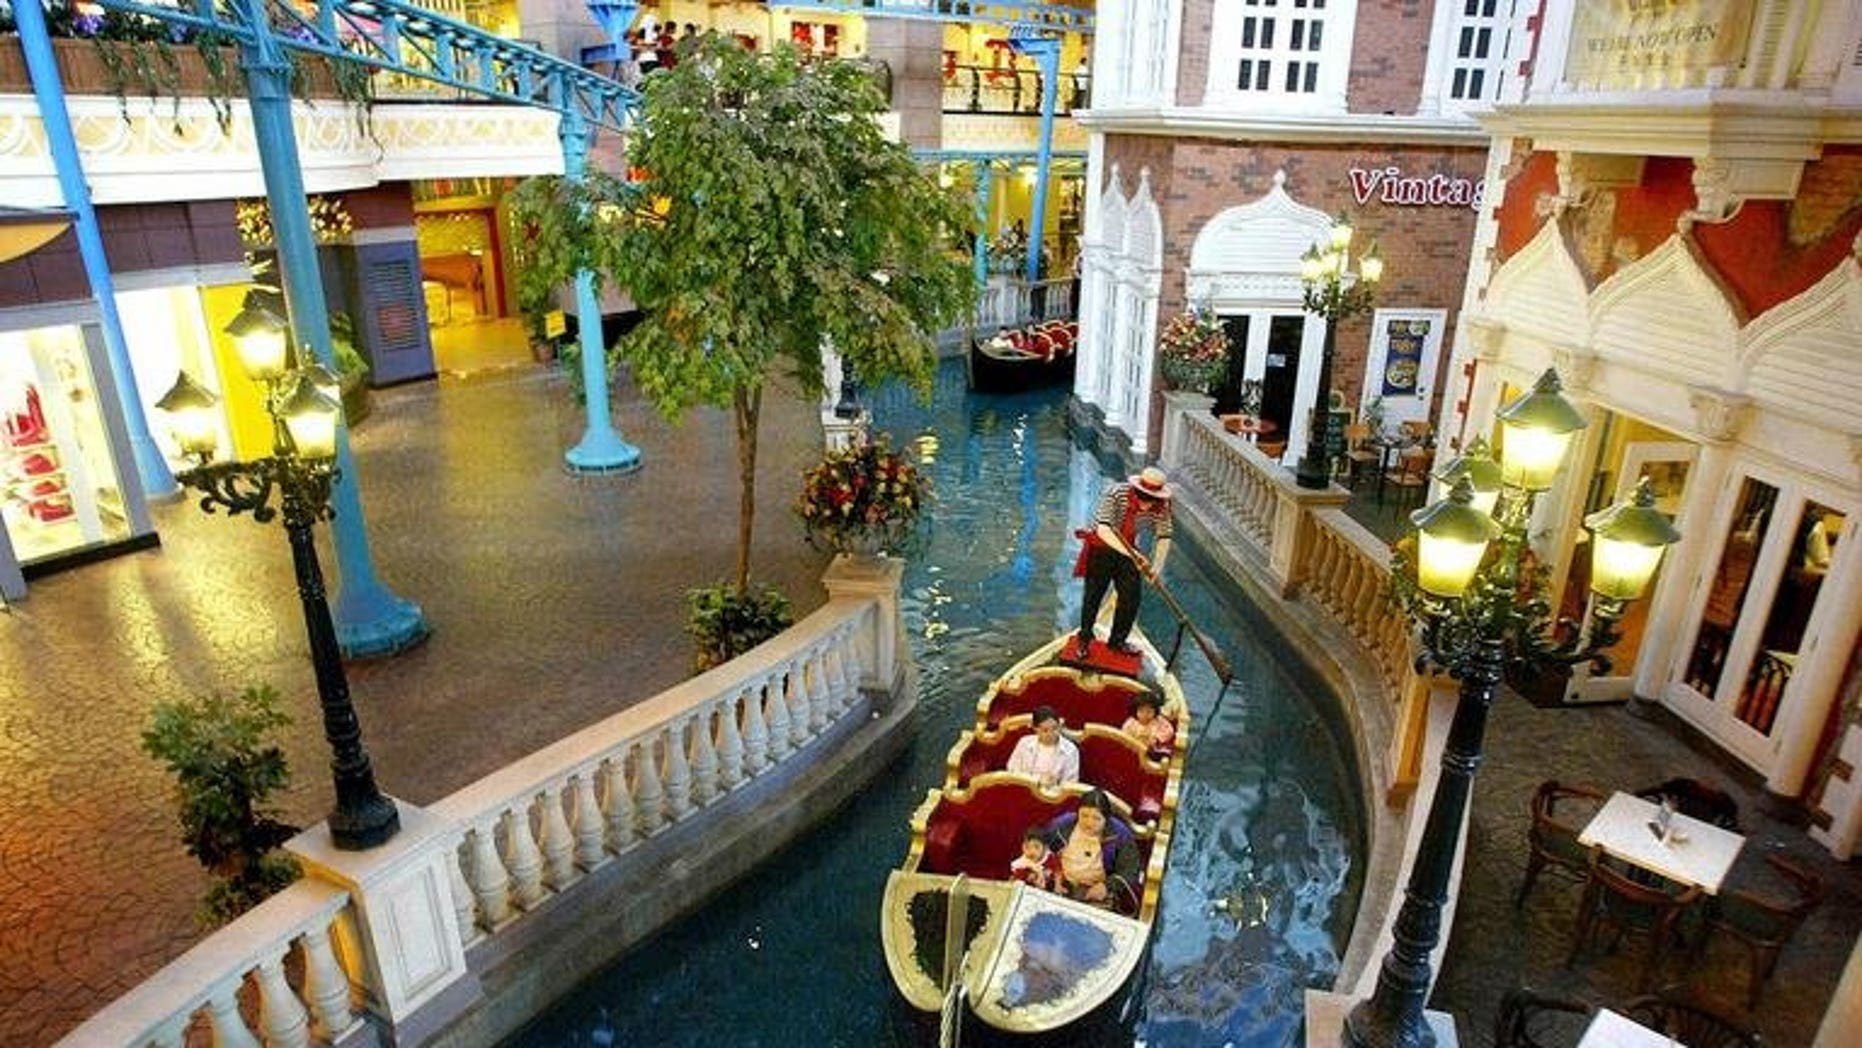 A Venician gondola carries visitors in a mini river at the new First World Plaza in Genting Highlands, north of Kuala Lumpur, on July 27, 2002. Malaysian casino operator Genting's resort unit will build a 400 million ringgit ($125 million) Twentieth Century Fox Theme Park near the capital Kuala Lumpur.